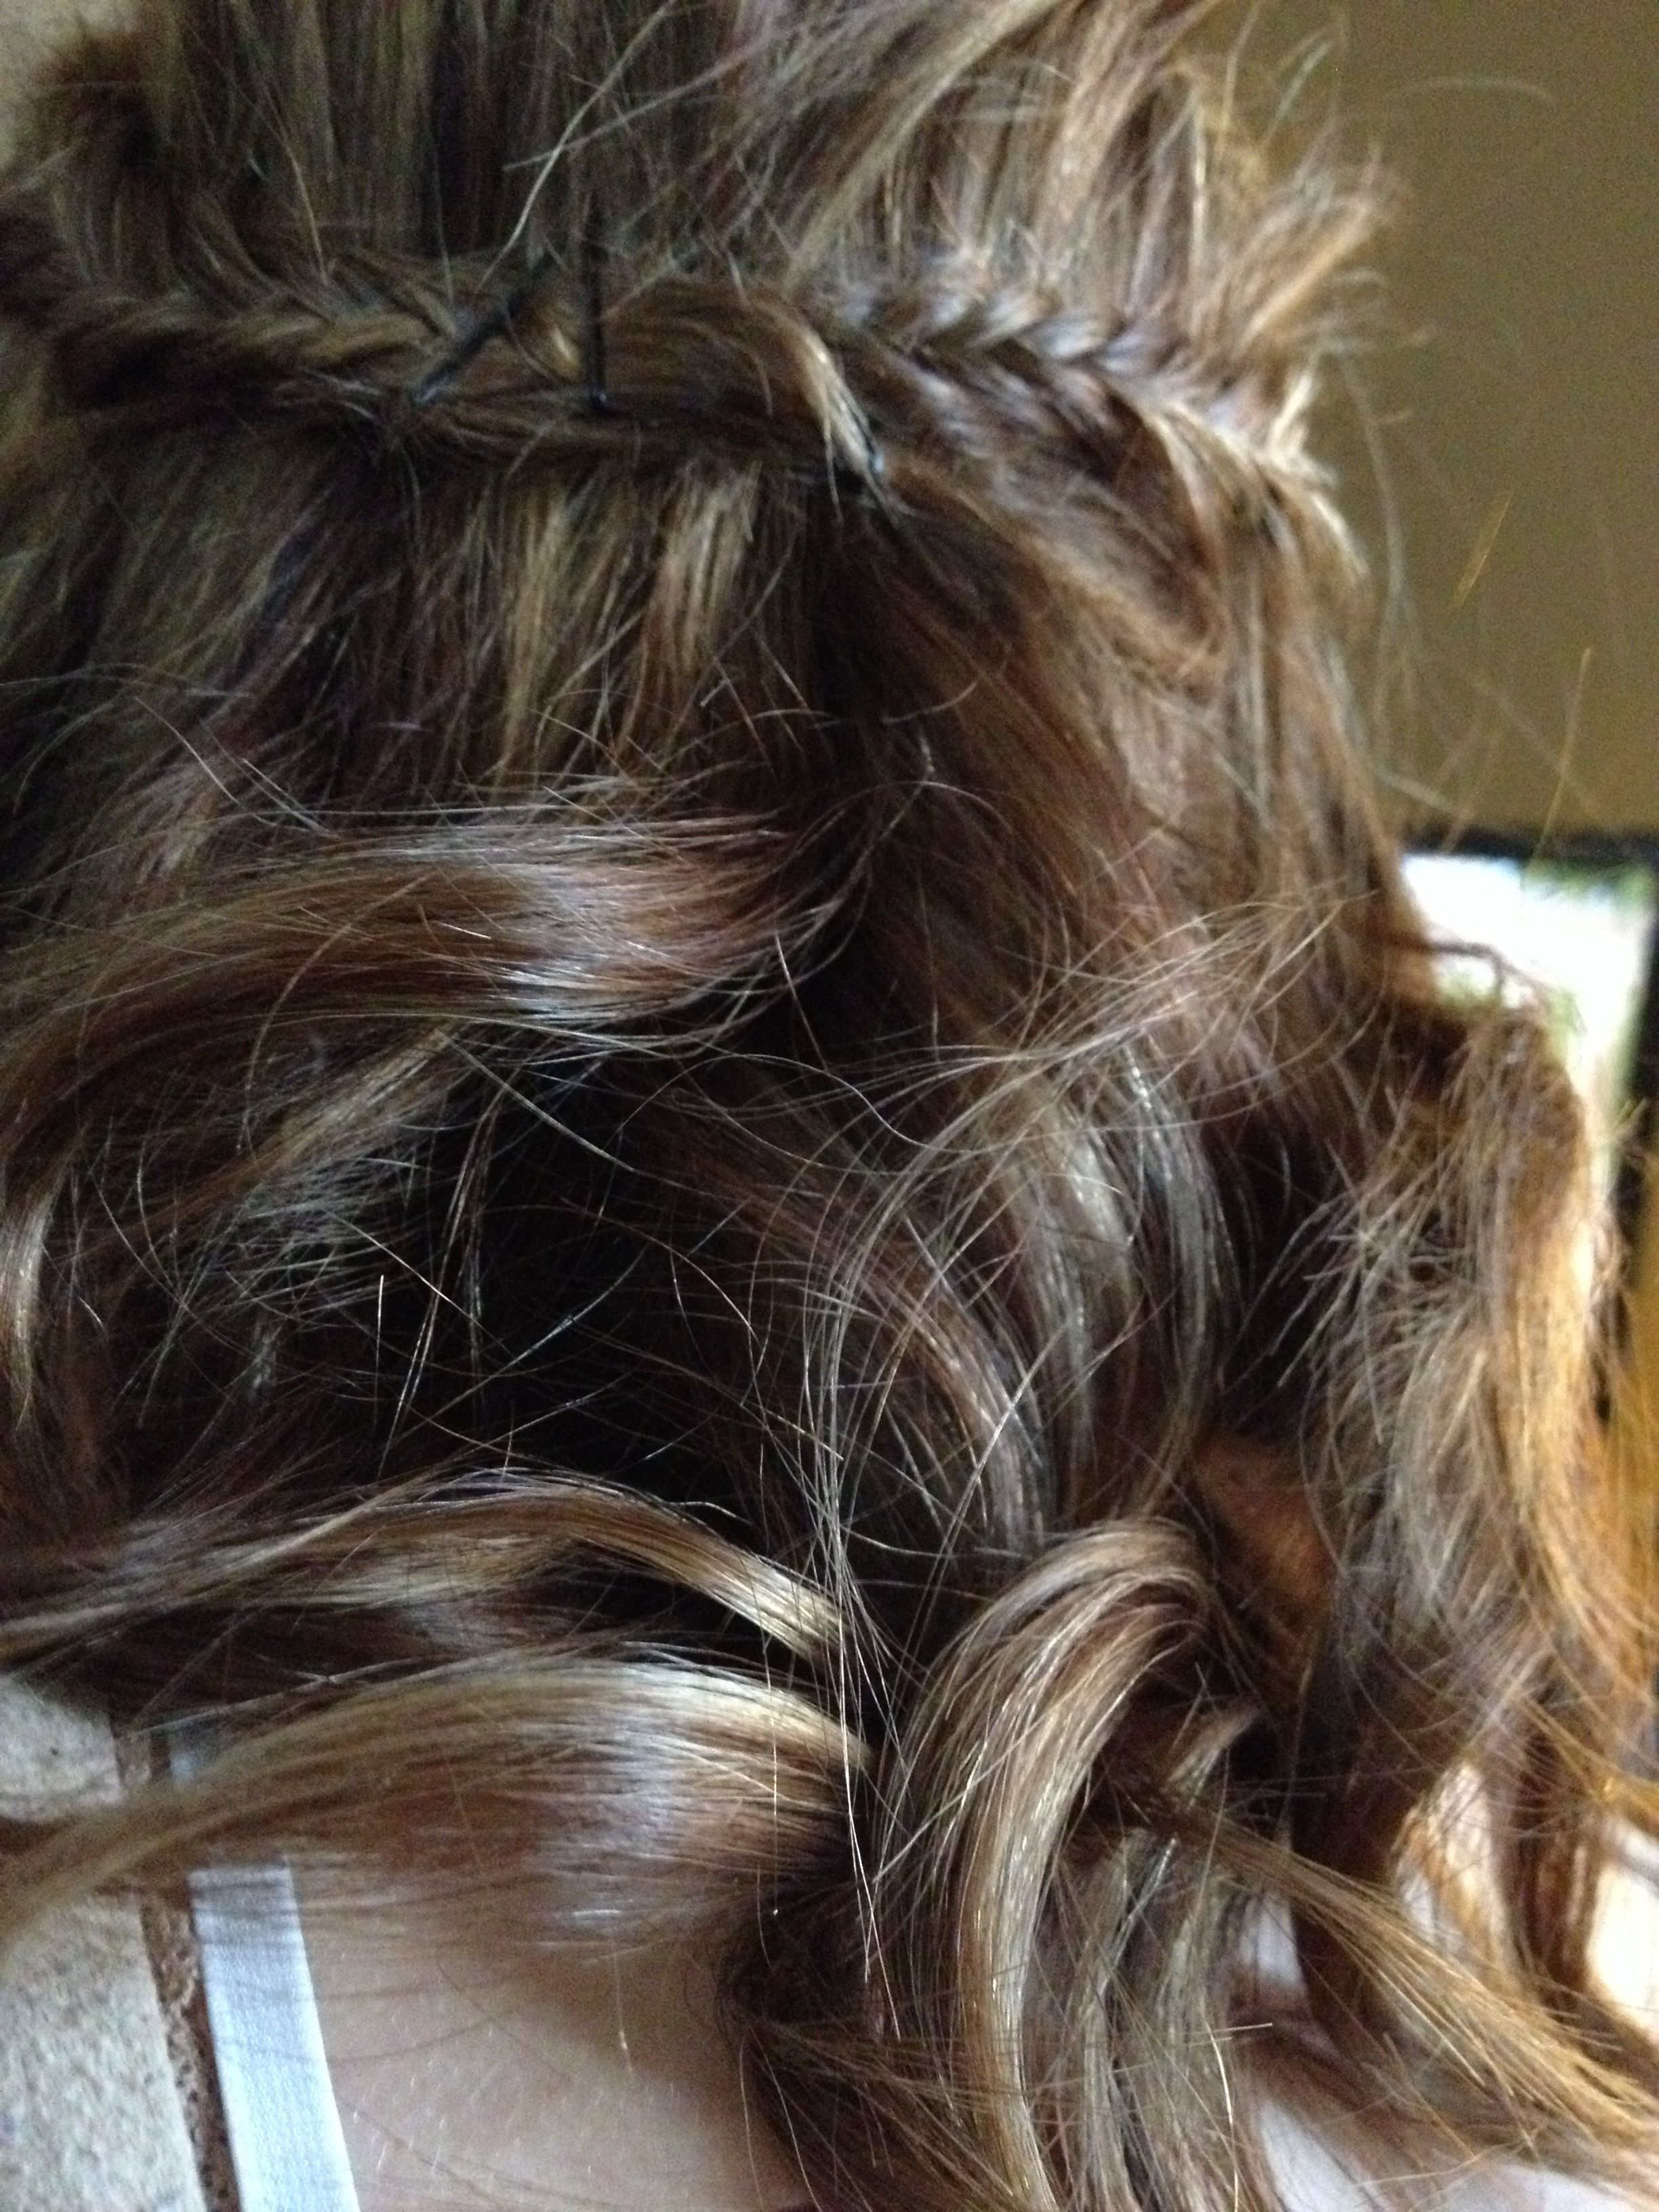 Hairstyles for Long Hair Ideas | Long hair styles, Side ... |Side Fishtail Braid With Curls